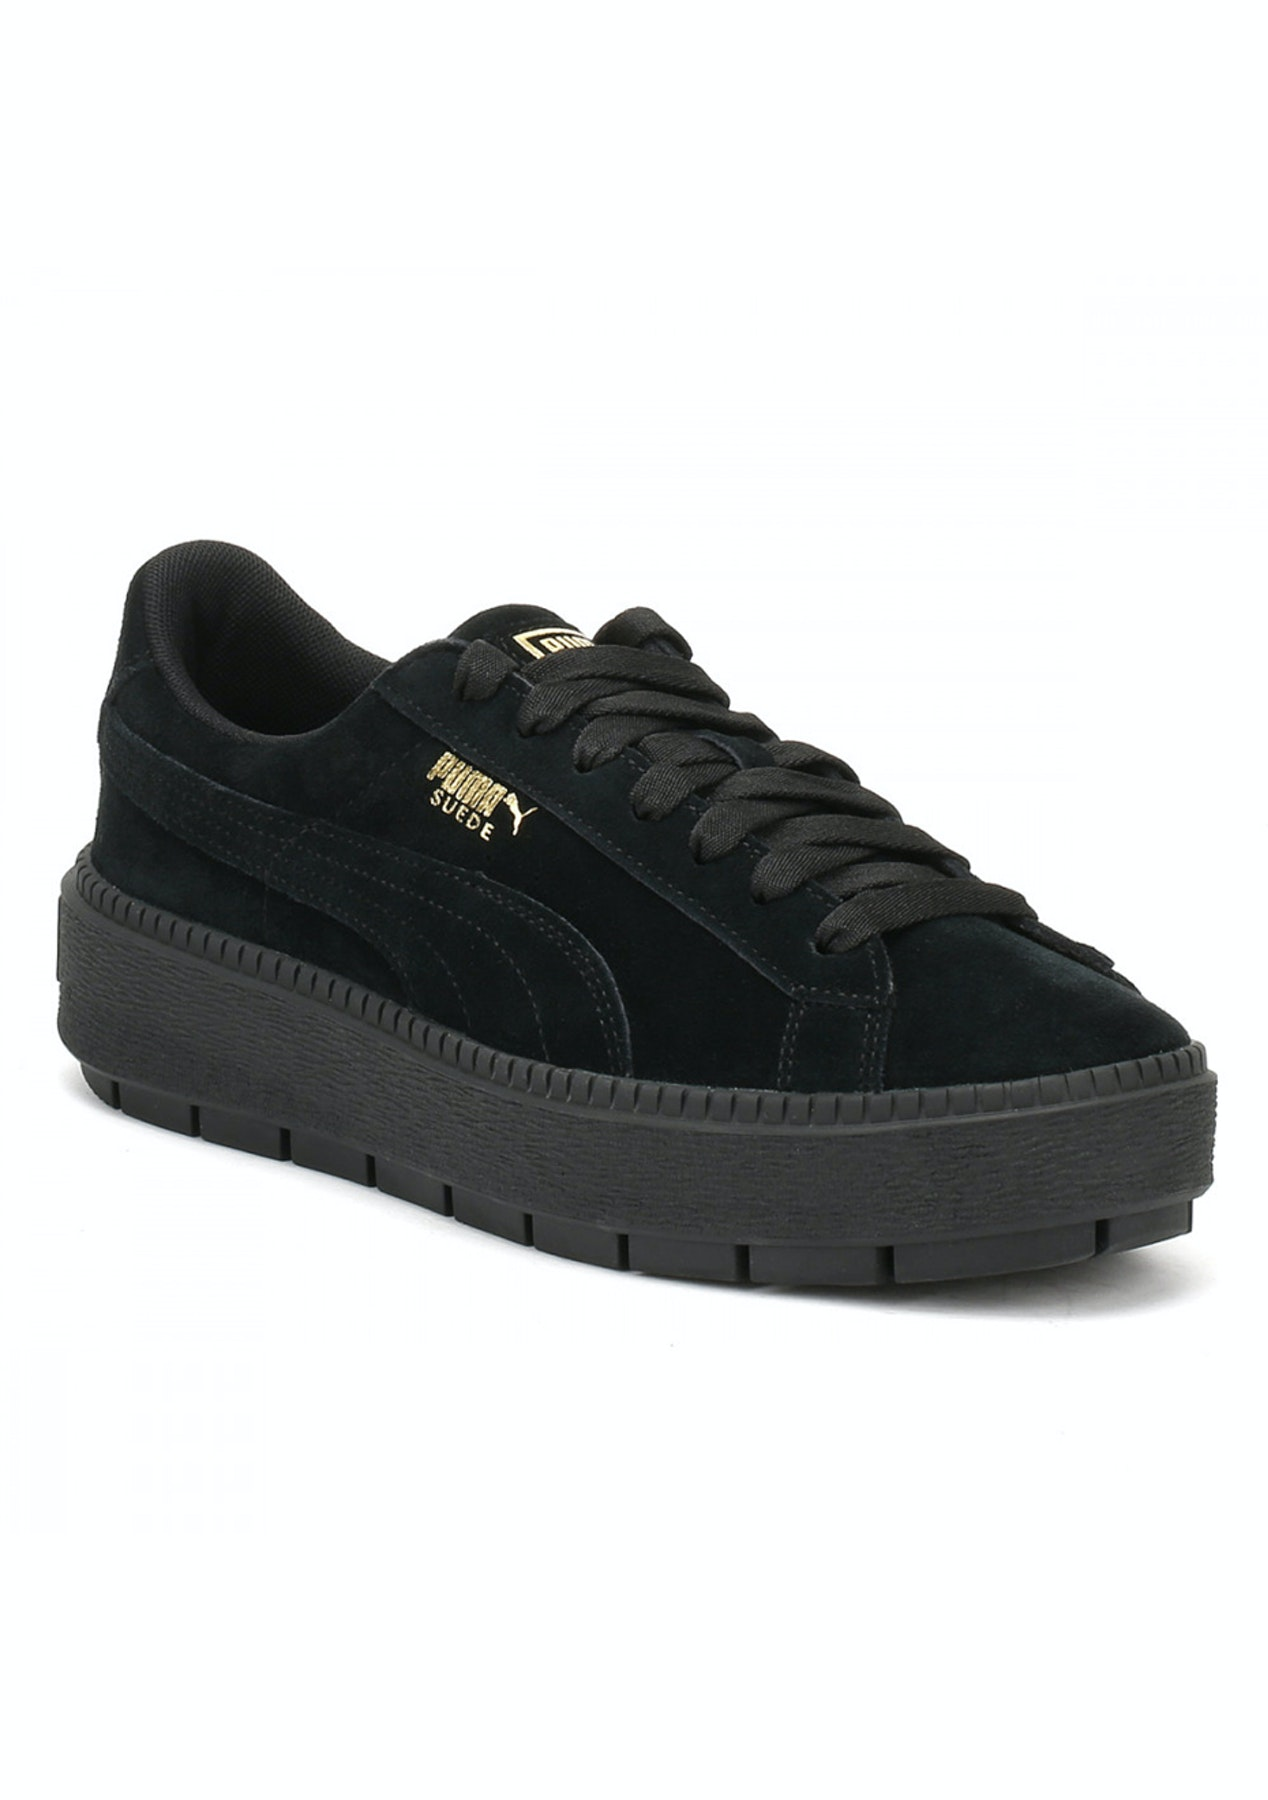 d0bb2f90994 Puma Womens - Suede Platform Trace Black - Puma Womens   Kids Up to 60% Off  - Onceit